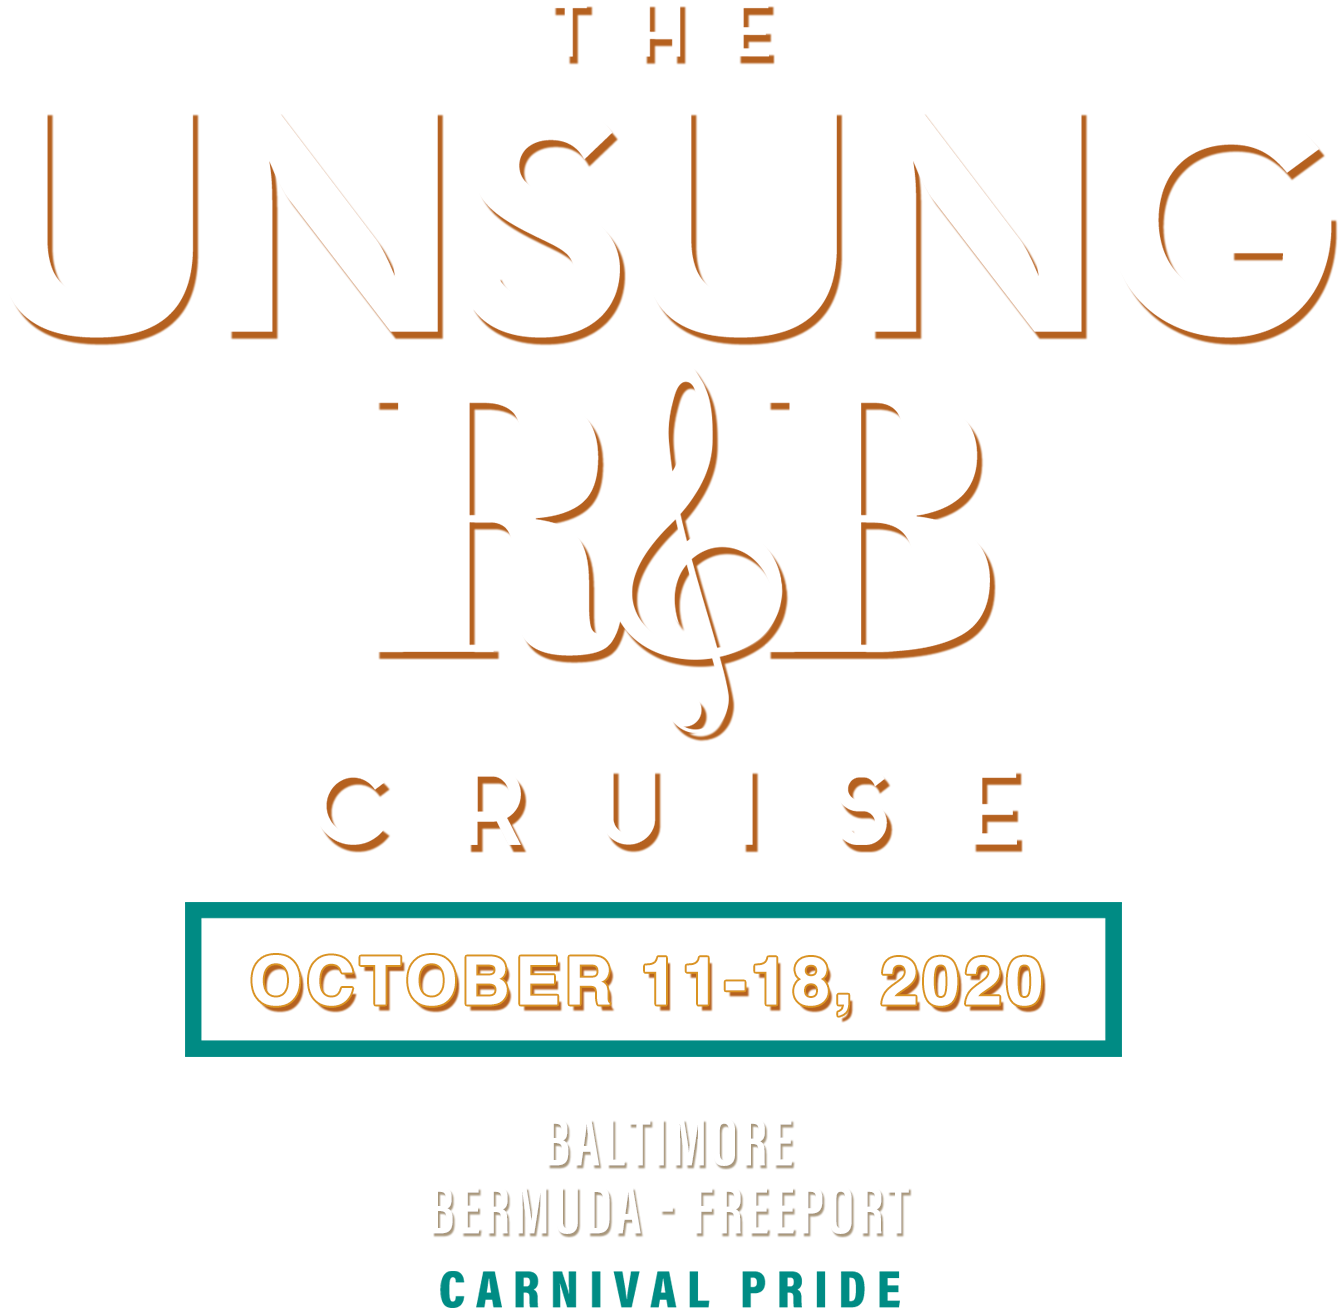 The Unsung R&B Cruise | October 11-18, 2020 | Baltimore, Bermuda - Freeport | Carnival Pride